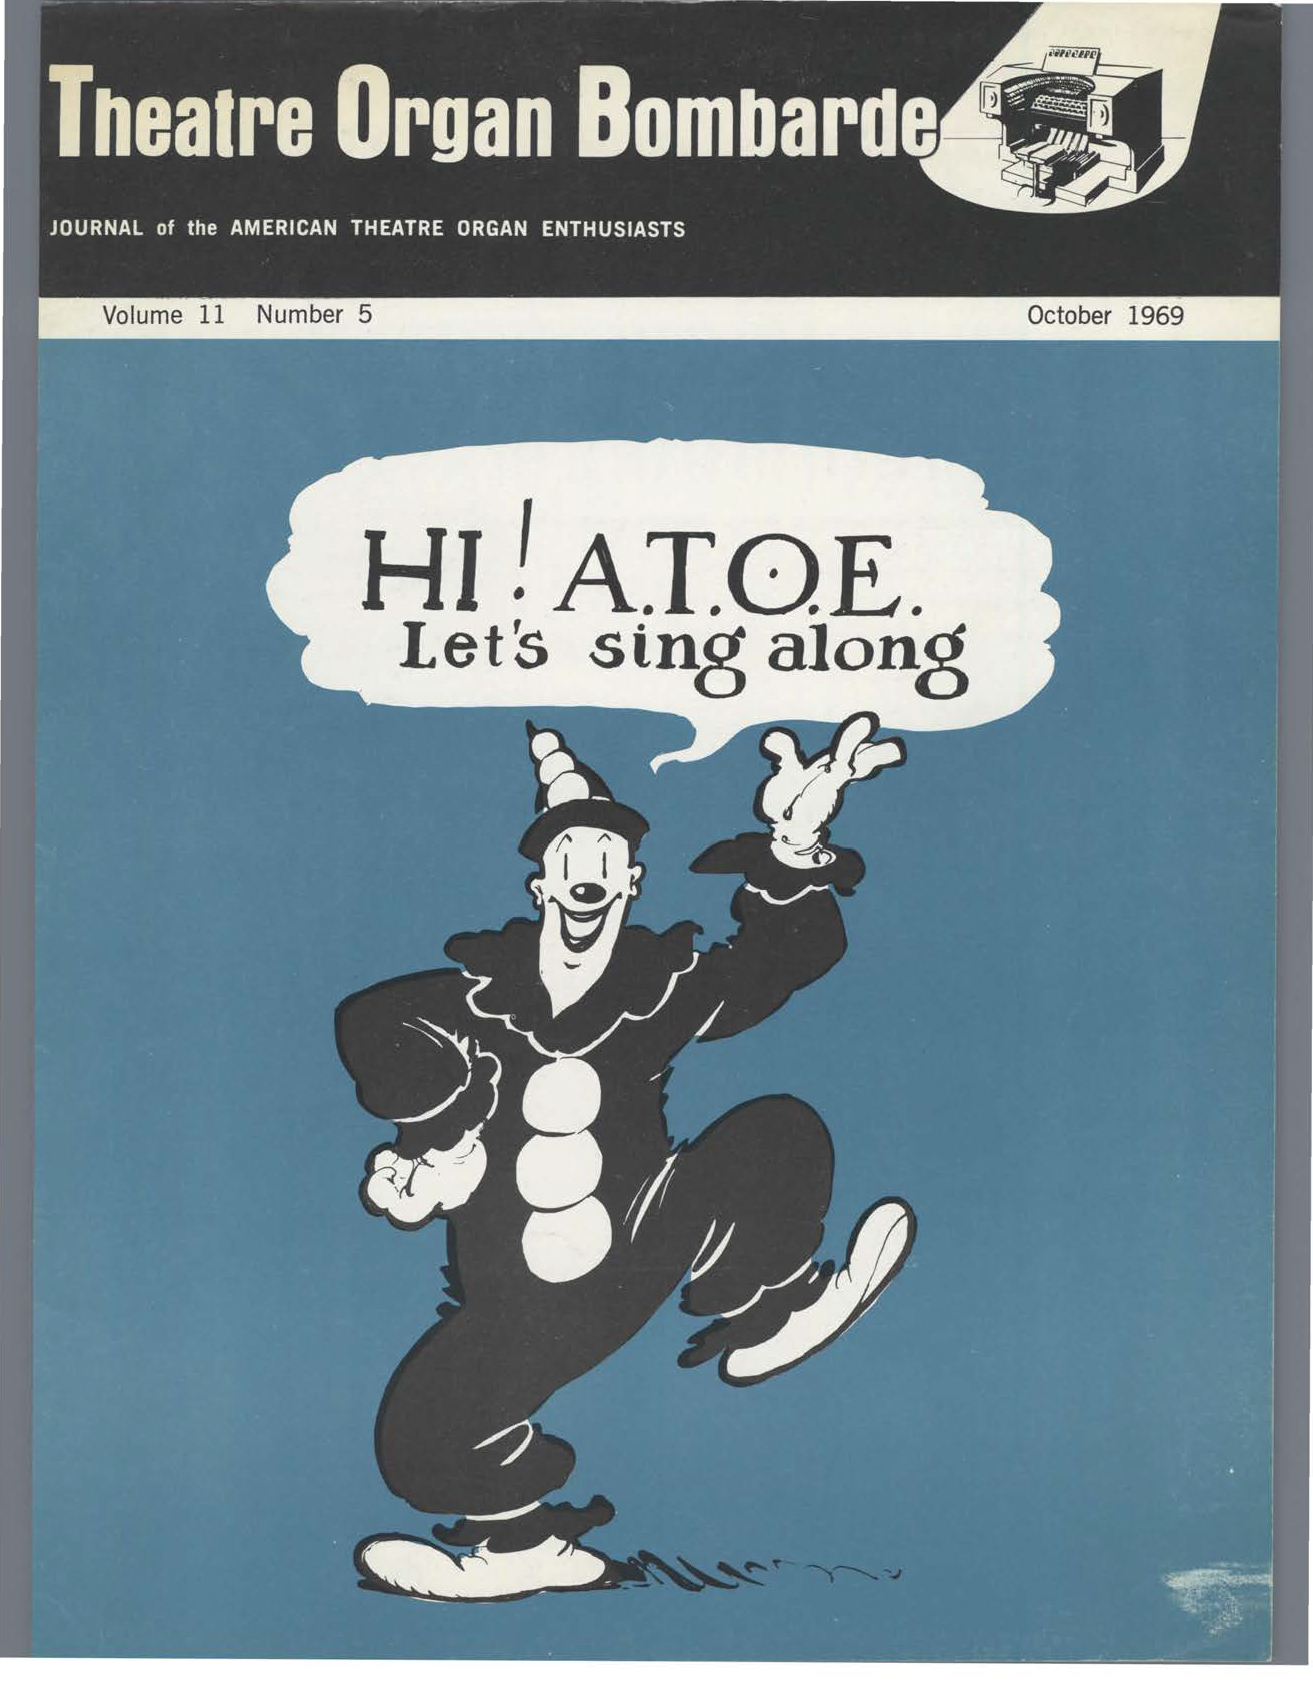 Theatre Organ, October 1969, Volume 11, Number 5